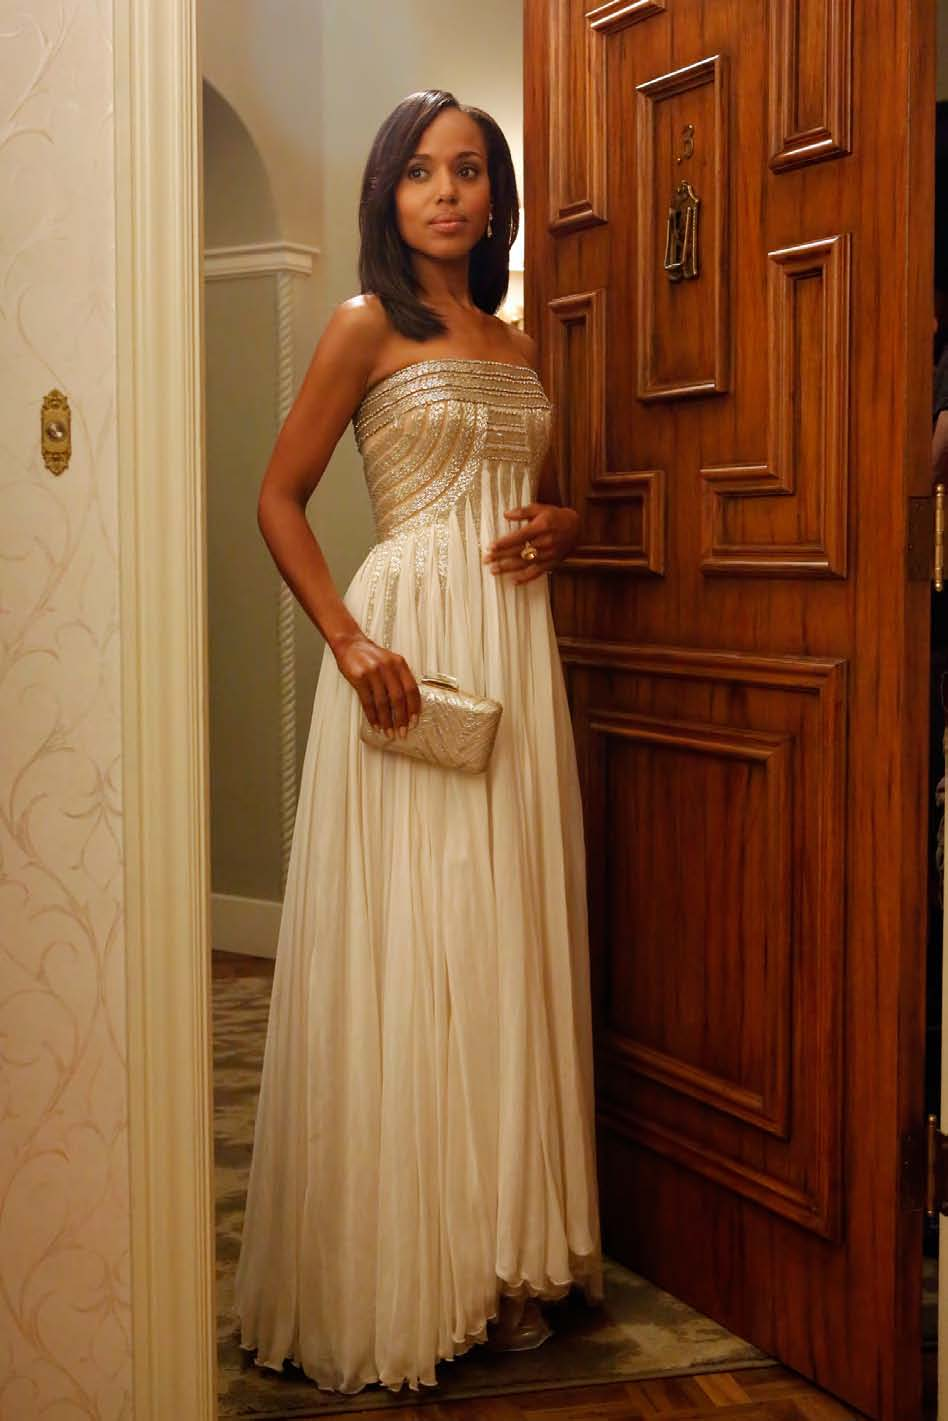 Kerry Washington as Olivia Pope in Jean Fares Couture